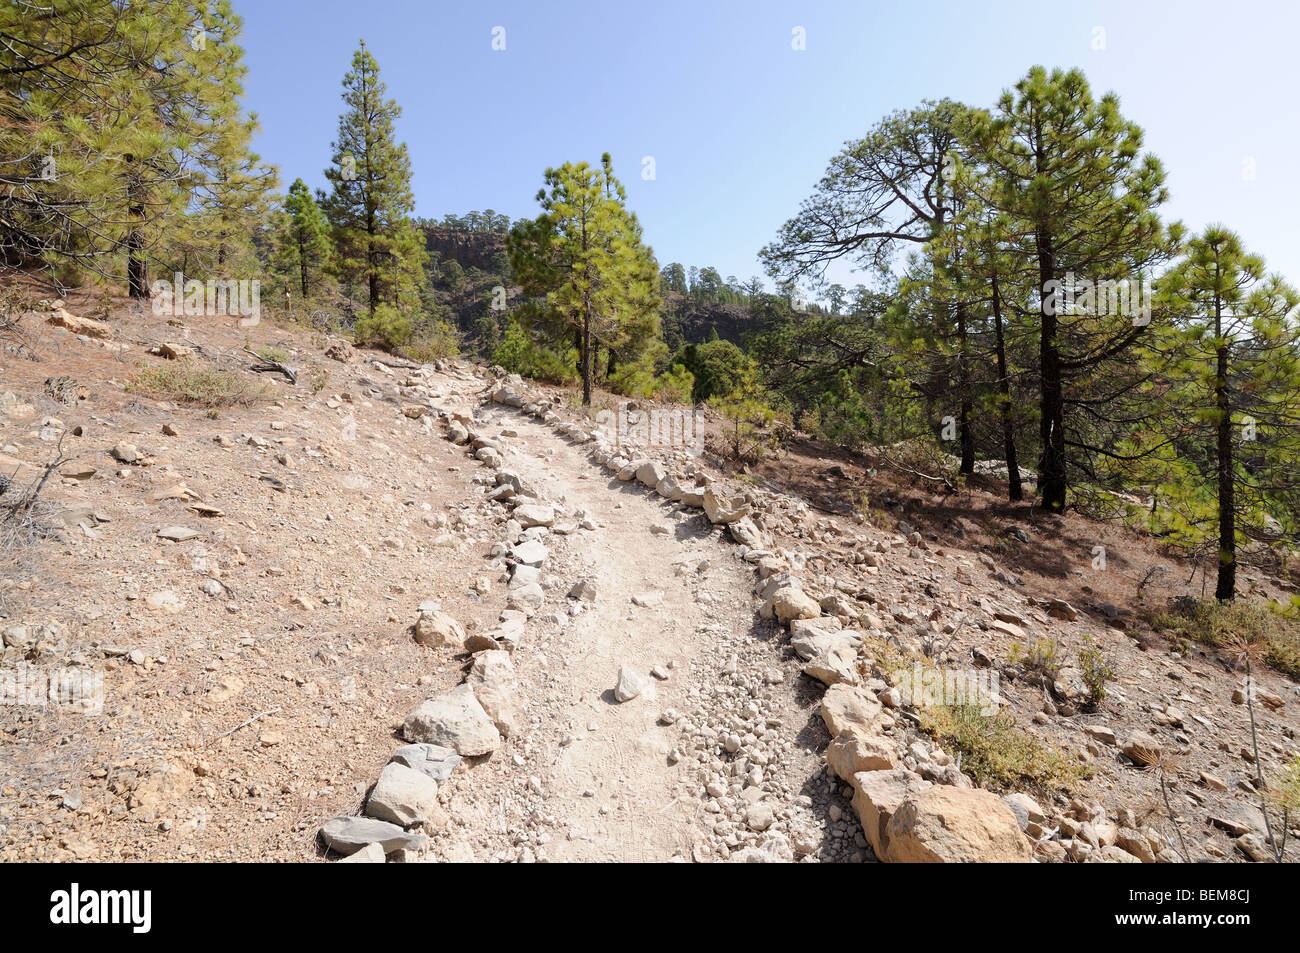 Rambling path in Teide National Park, Tenerife Spain - Stock Image